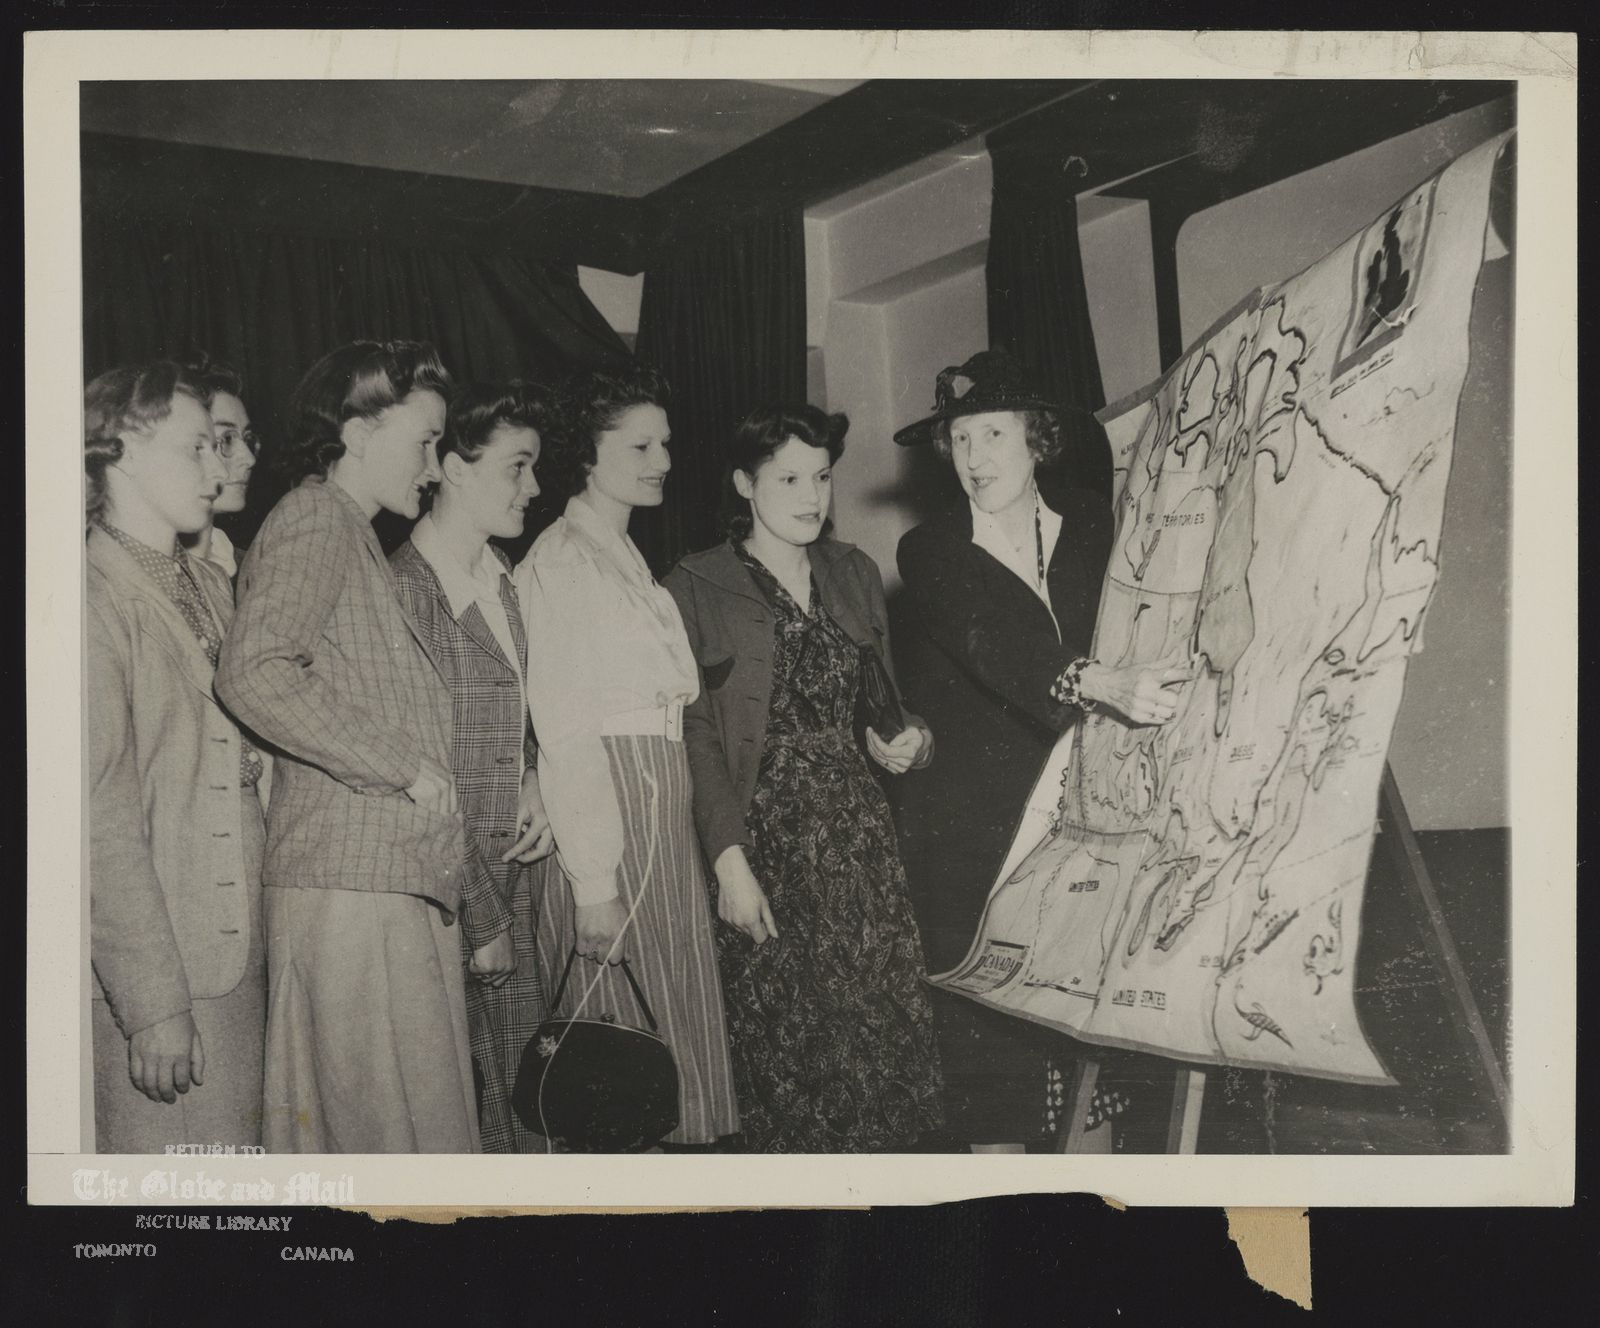 CANADIAN WAR BRIDES STUDY GEOGRAPHY. LADY TWEEDSMUIR, WIDOW OF THE LATE GOVERNOR-GENERAL OF CANADA, TEACHES CANADIAN GEOGRAPHY TO ENGLISH BRIDES OF CANADIAN SOLDIERS---A FEW OF THE MANY BRITISH GIRLS WHO HAVE MARRIED MEMBERS OF THE CANADIAN ARMED FORCES. CLASSES ARE CONDUCTED AT THE LONDON HEADQUARTERS OF THE CANADIAN LEGION TO FAMILIARIZE THE YOUNG WOMEN WITH THE COUNTRY IN WHICH THEY WILL LIVE. 8/6/43 [1943]